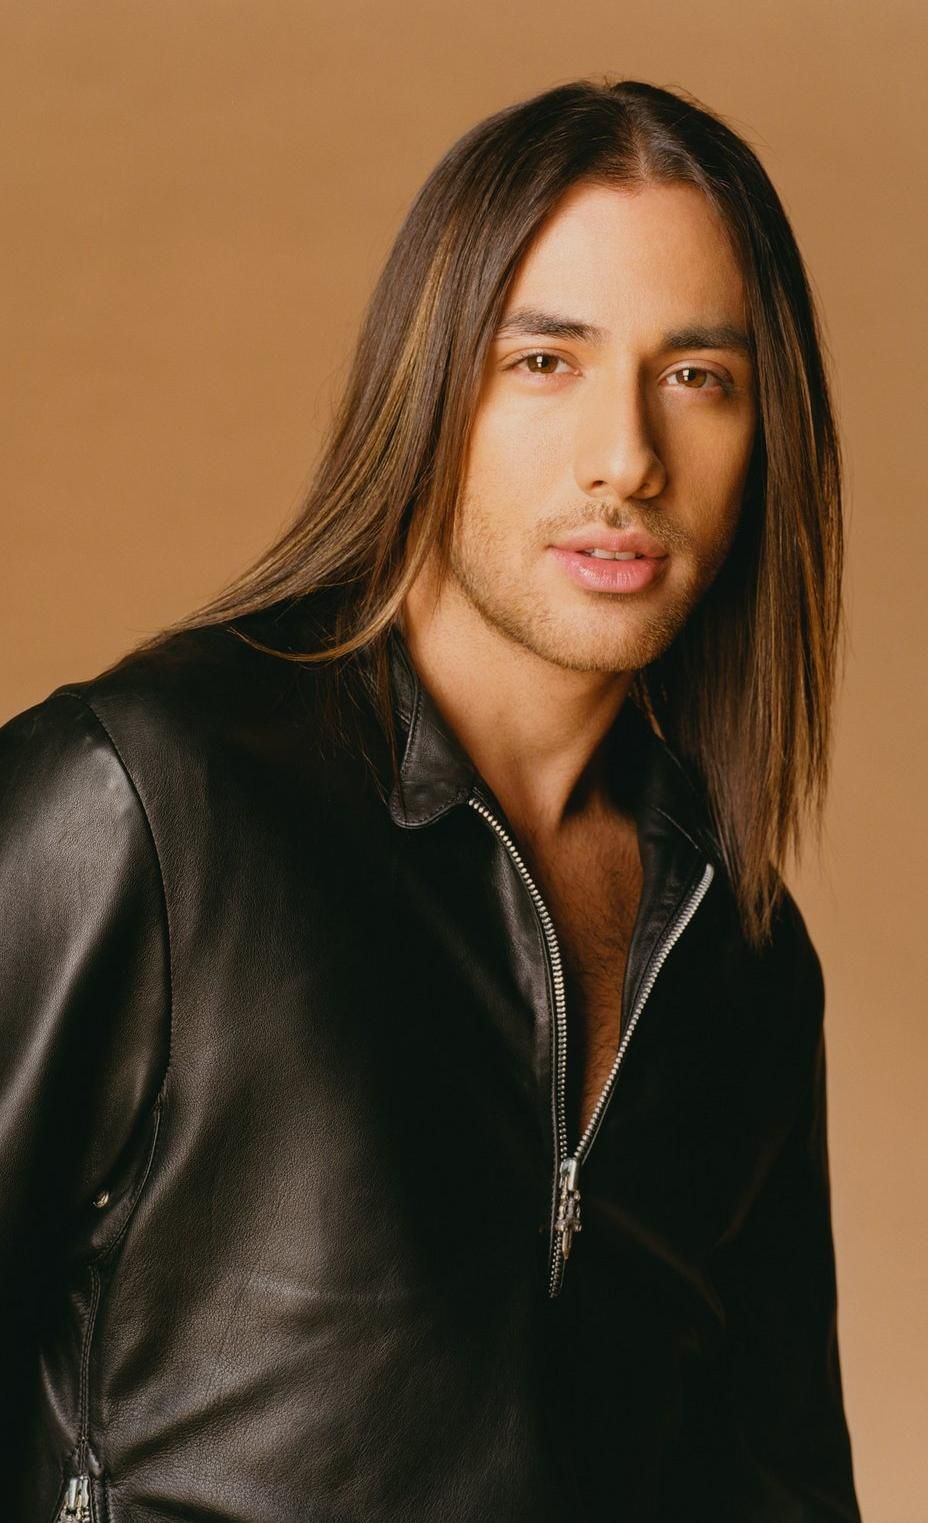 I love this pic of Howie D <11 my favorite Backstreet Boy  Boys